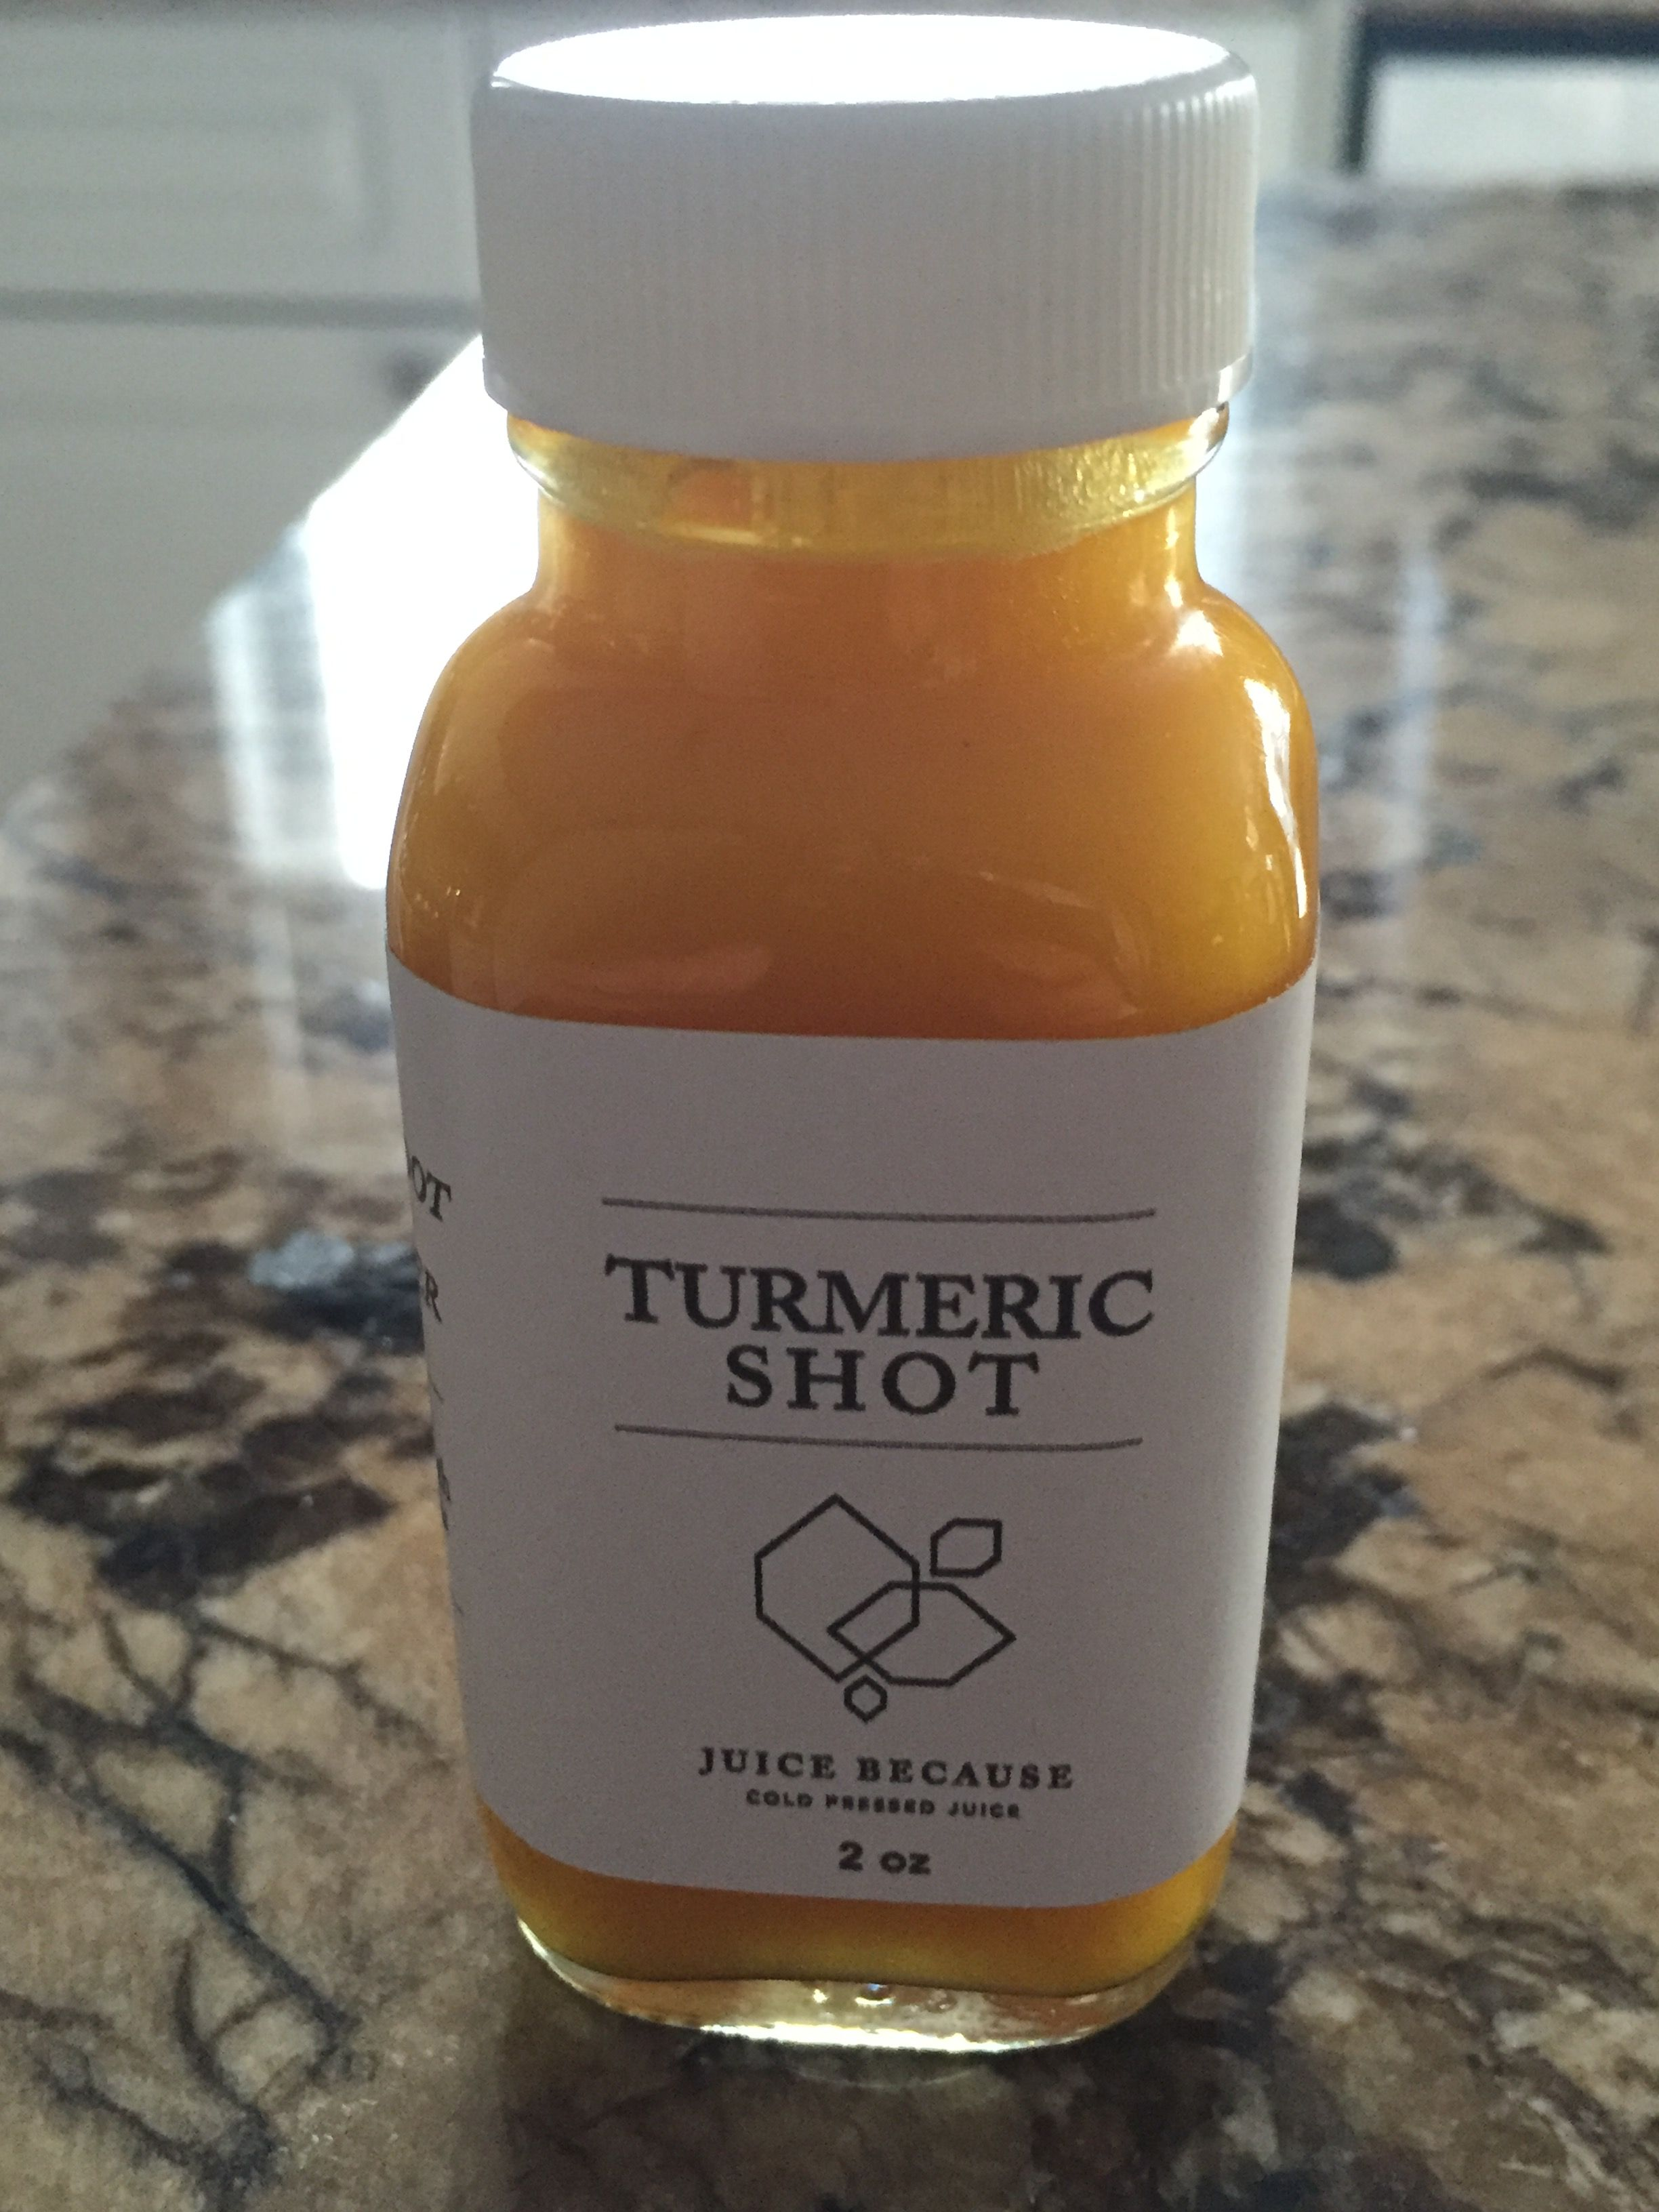 Exited try this. Just found Tumeric cold pressed juice at